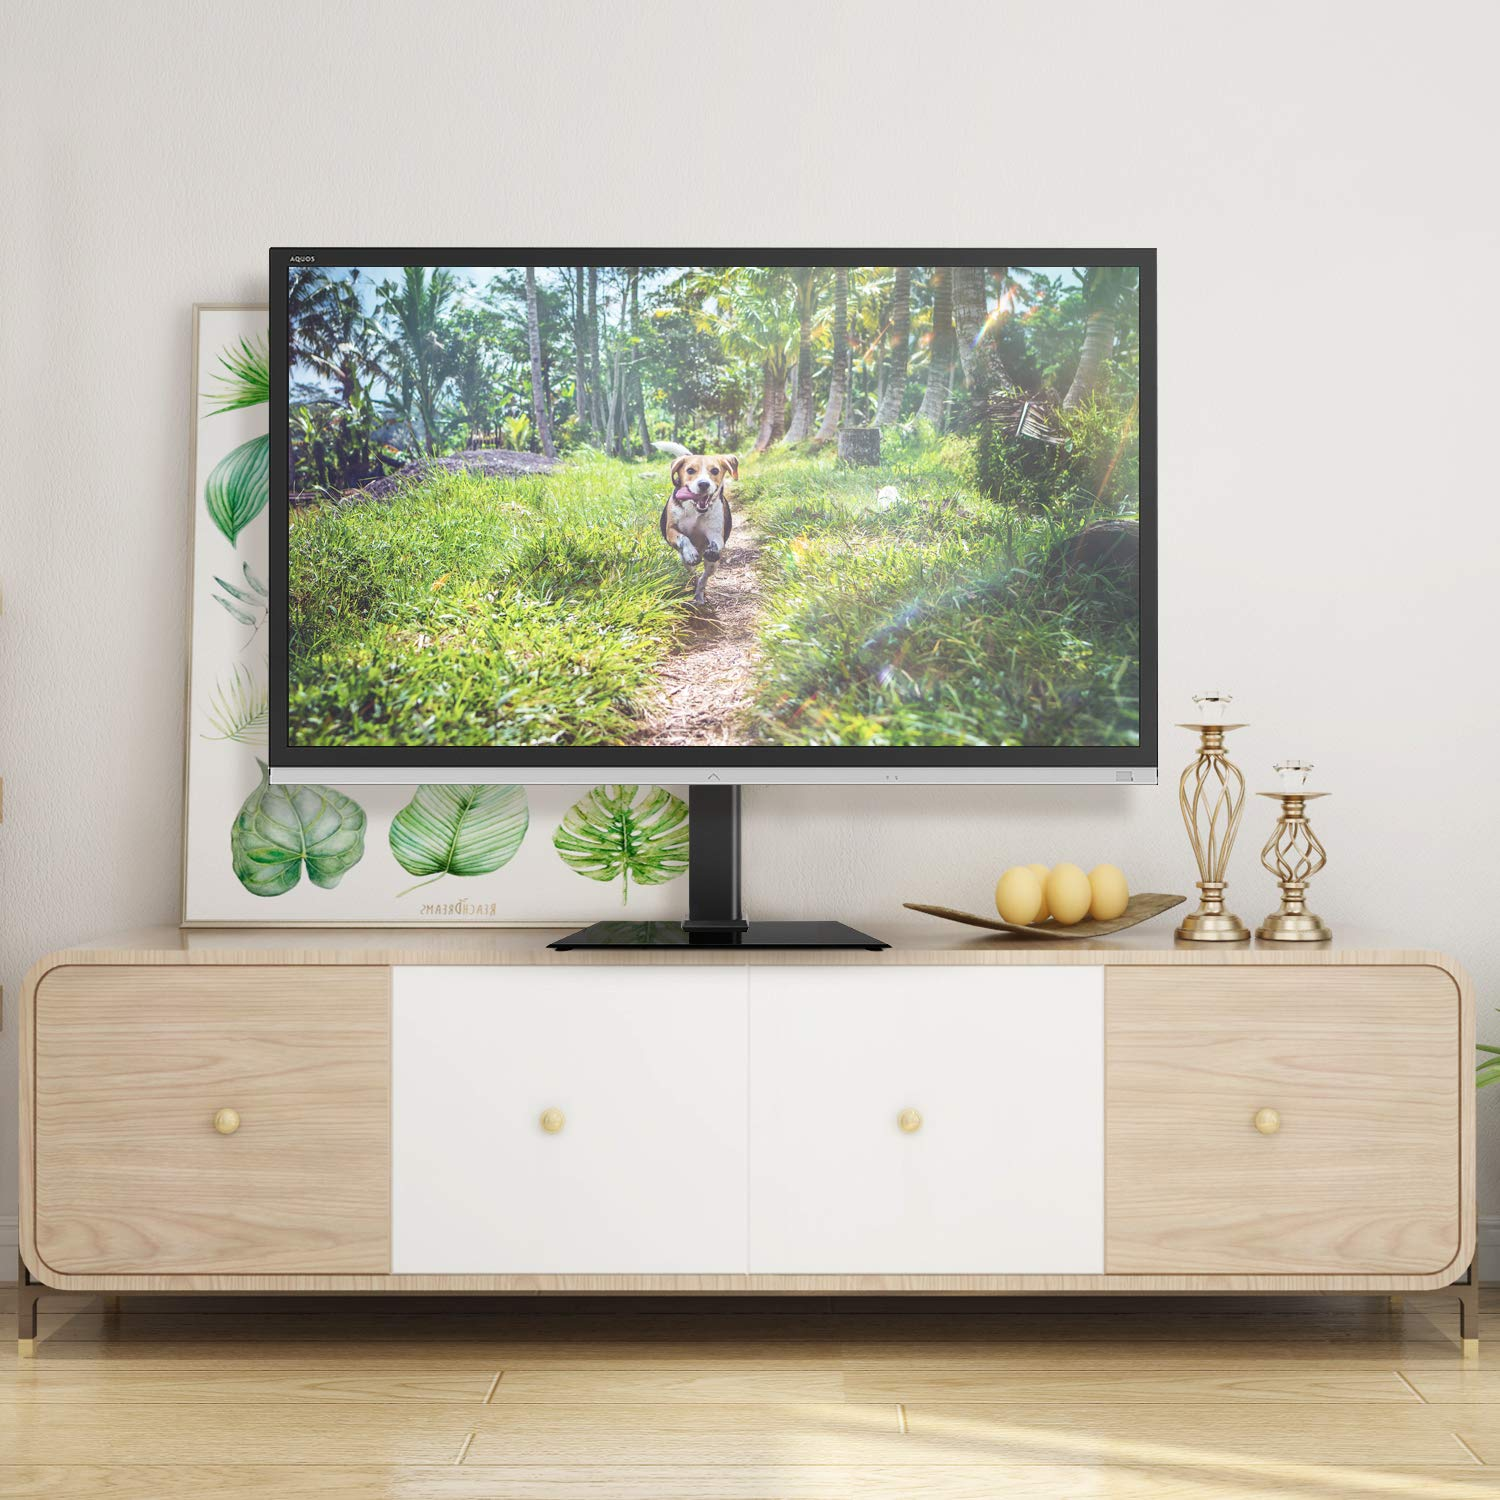 Universal Swivel Tabletop TV Stand With Mount For 27 32 37 42 47 55 Inch LED,LCD